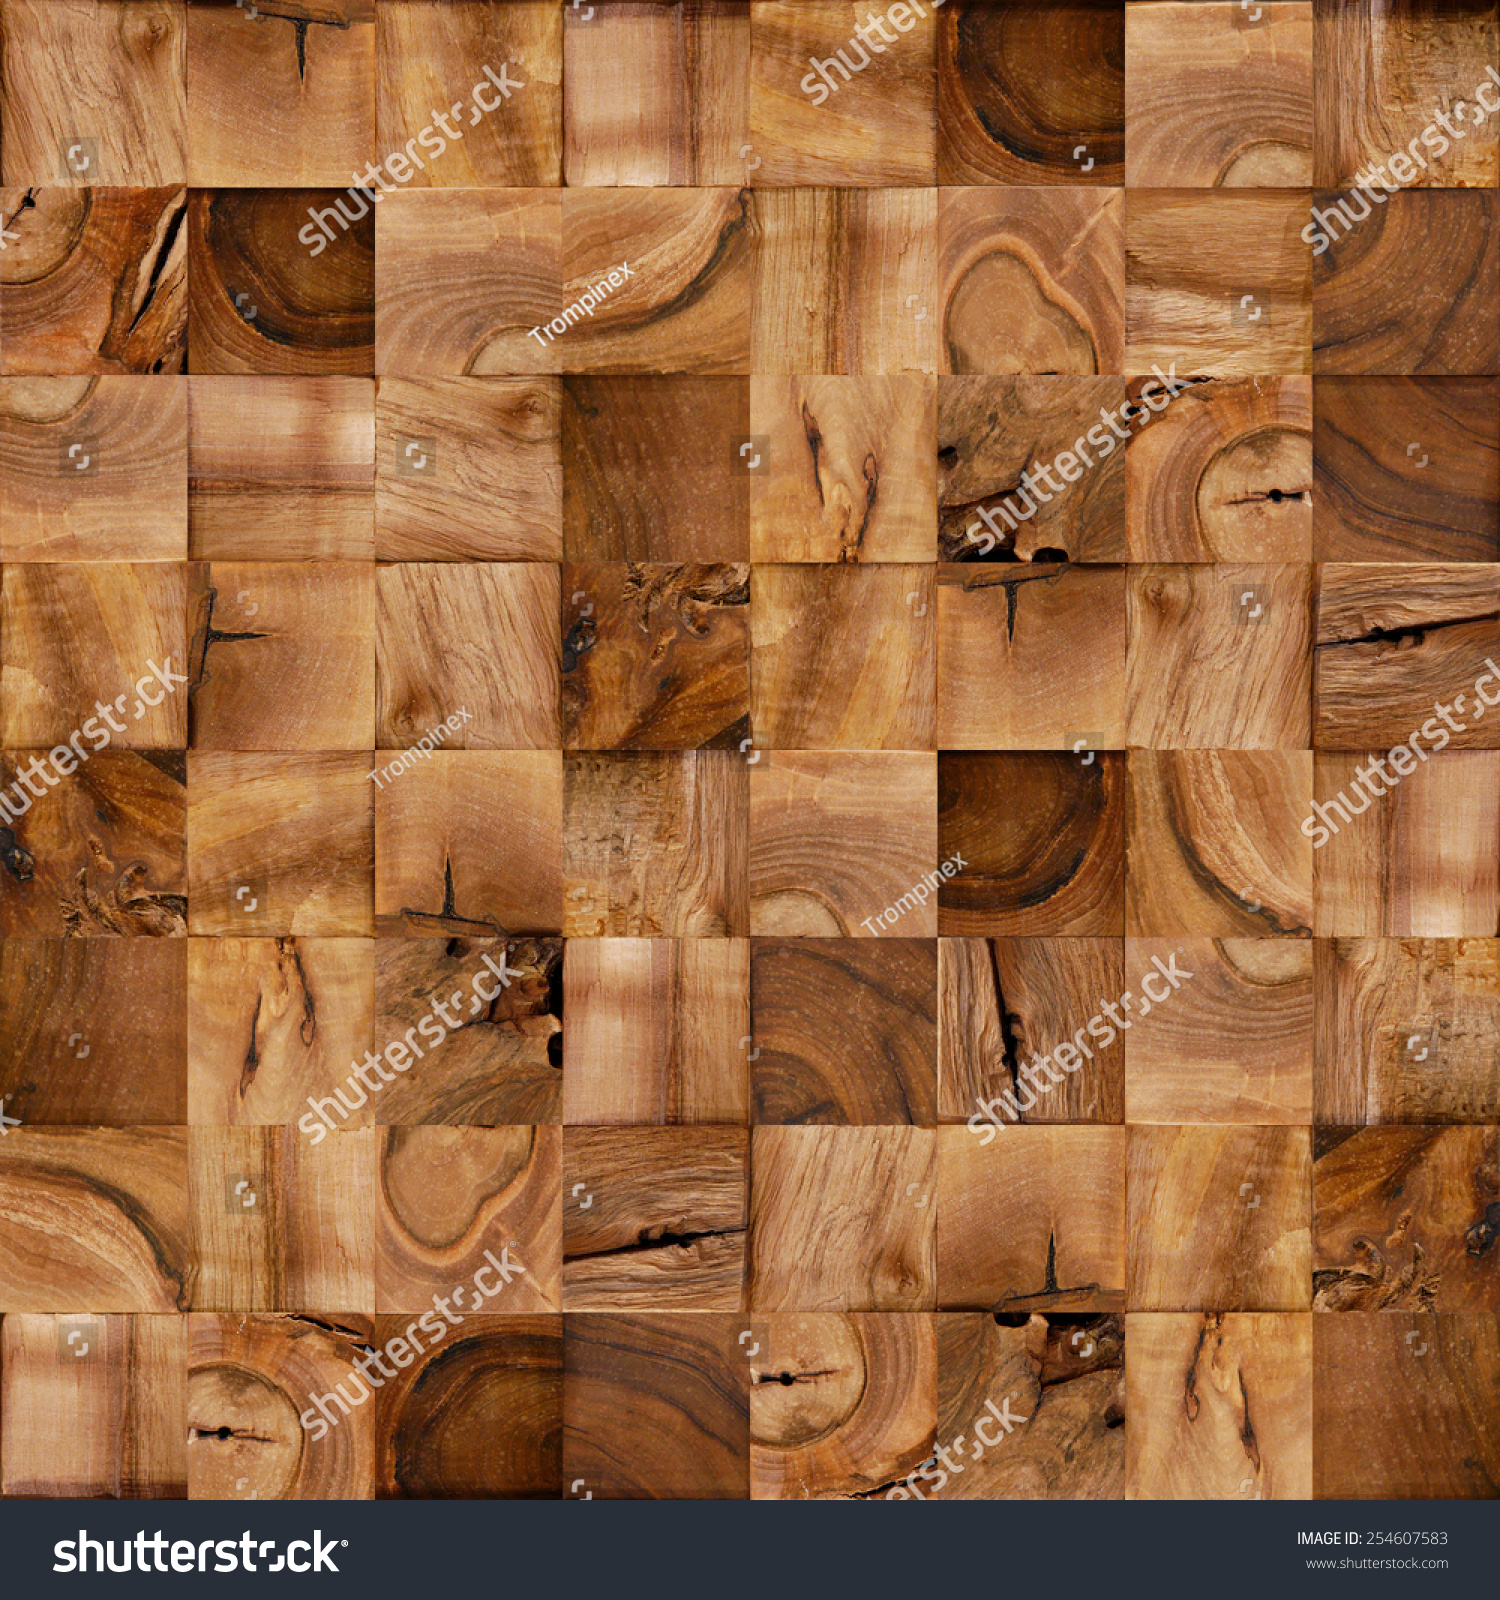 Abstract Wooden Blocks Cube Pattern Checkered Stock Illustration ...